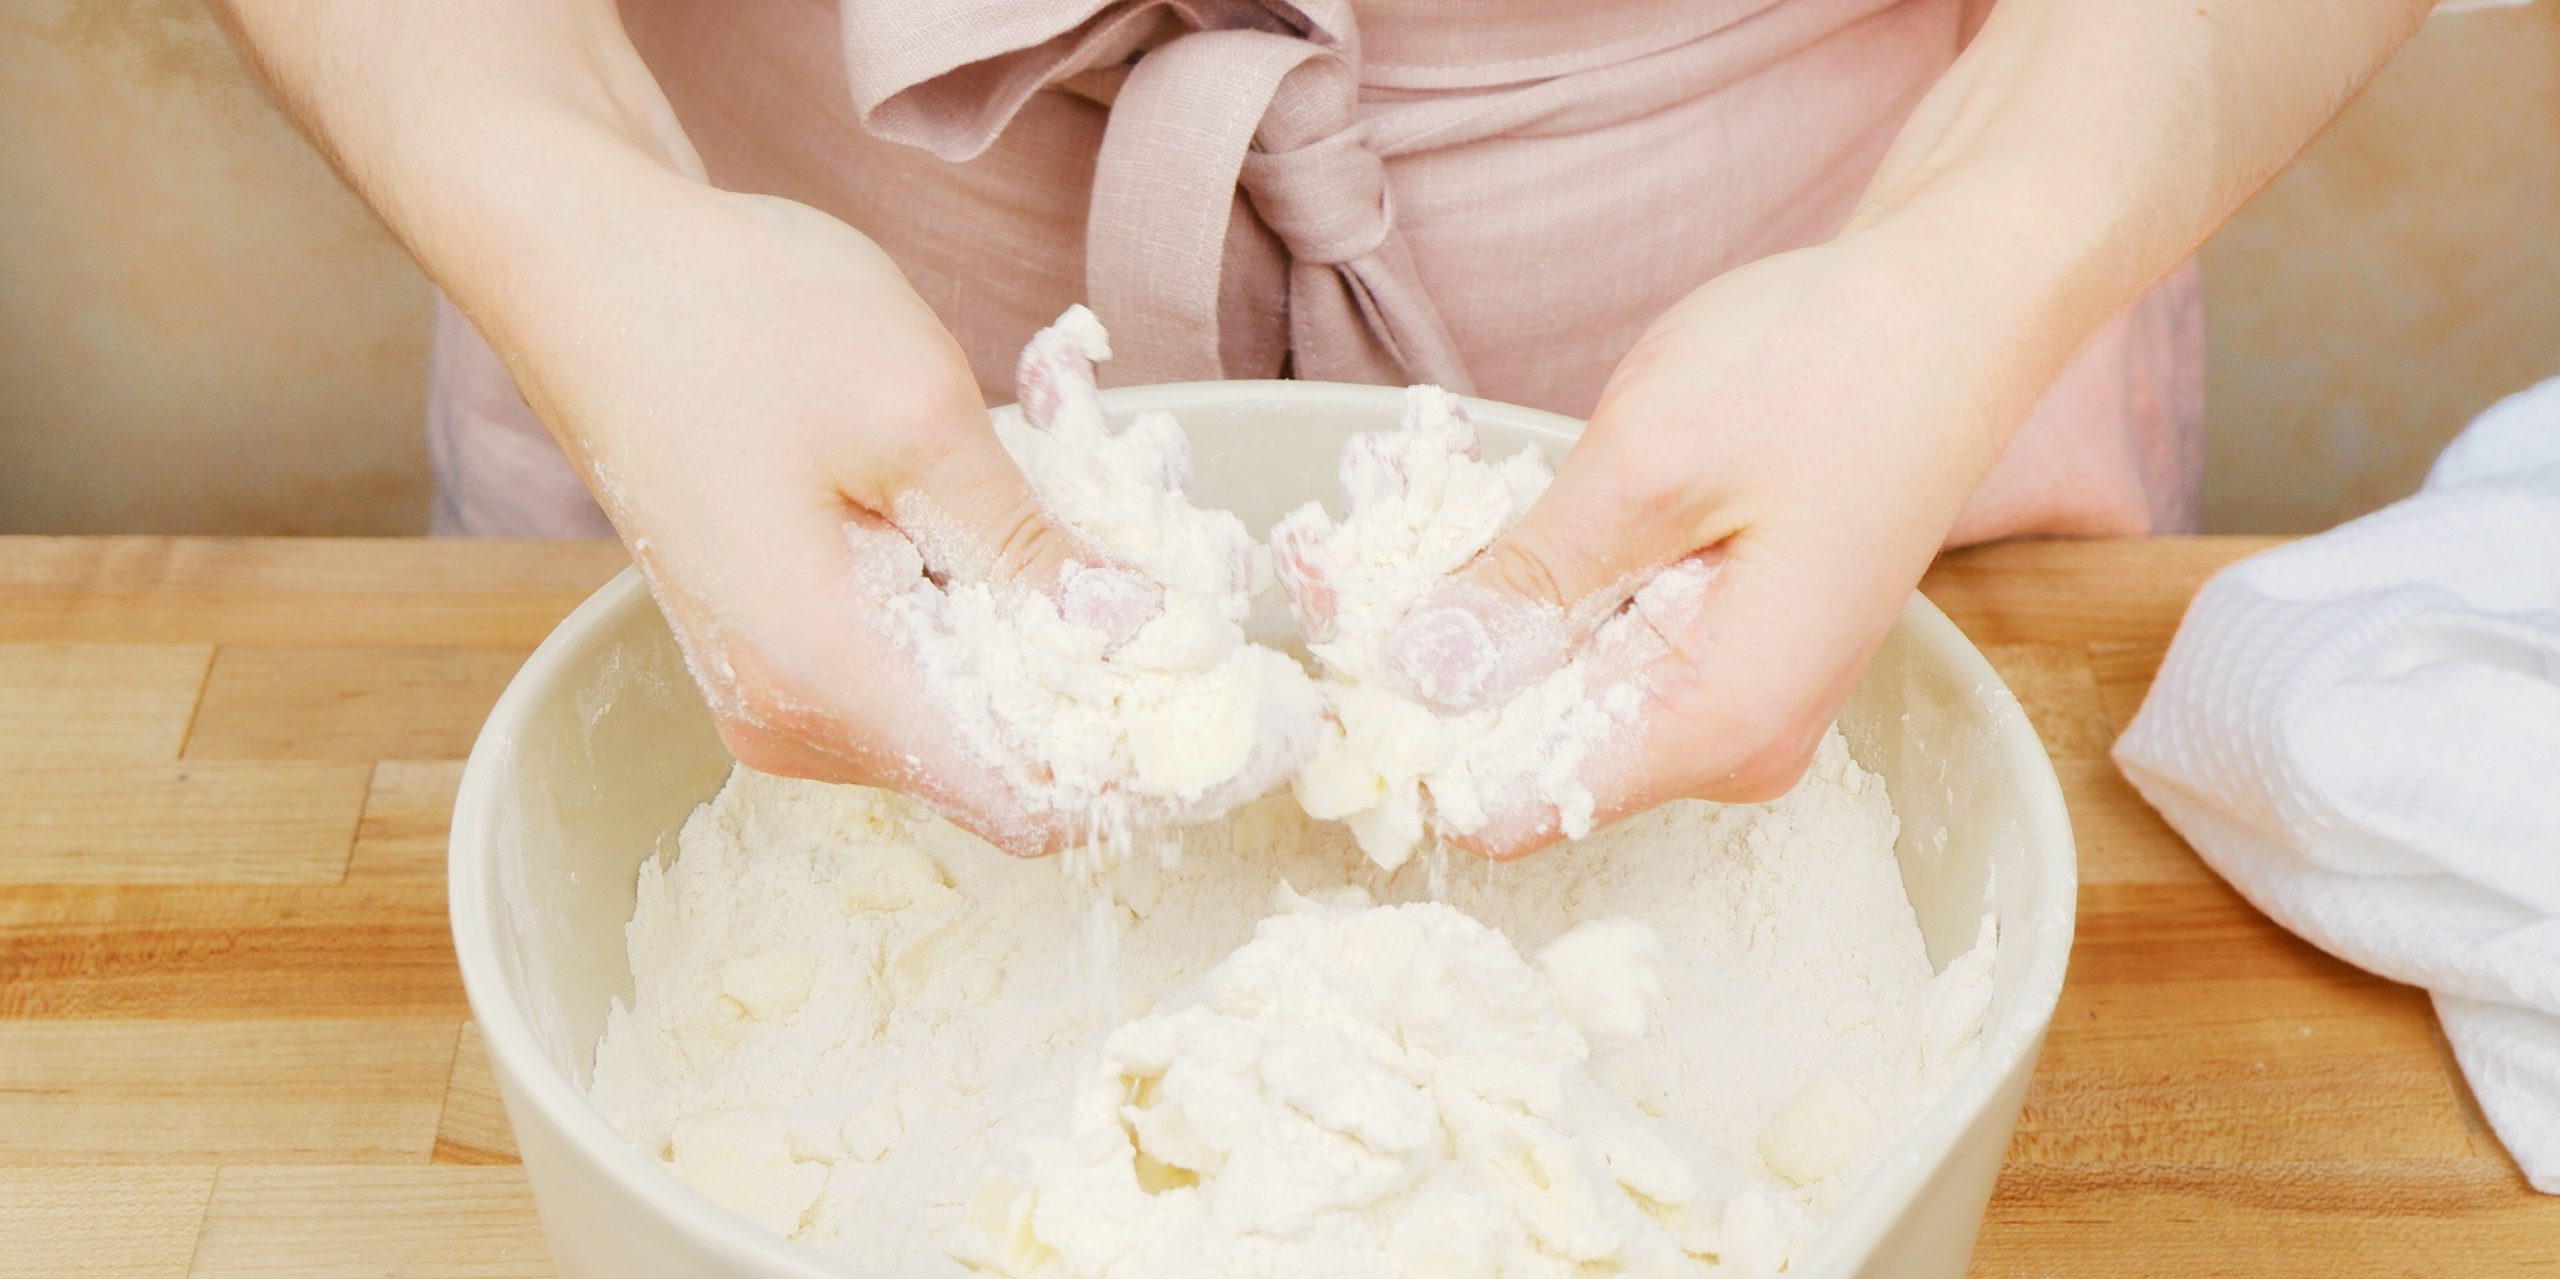 a baker's hands cutting butter into a bowl of flour